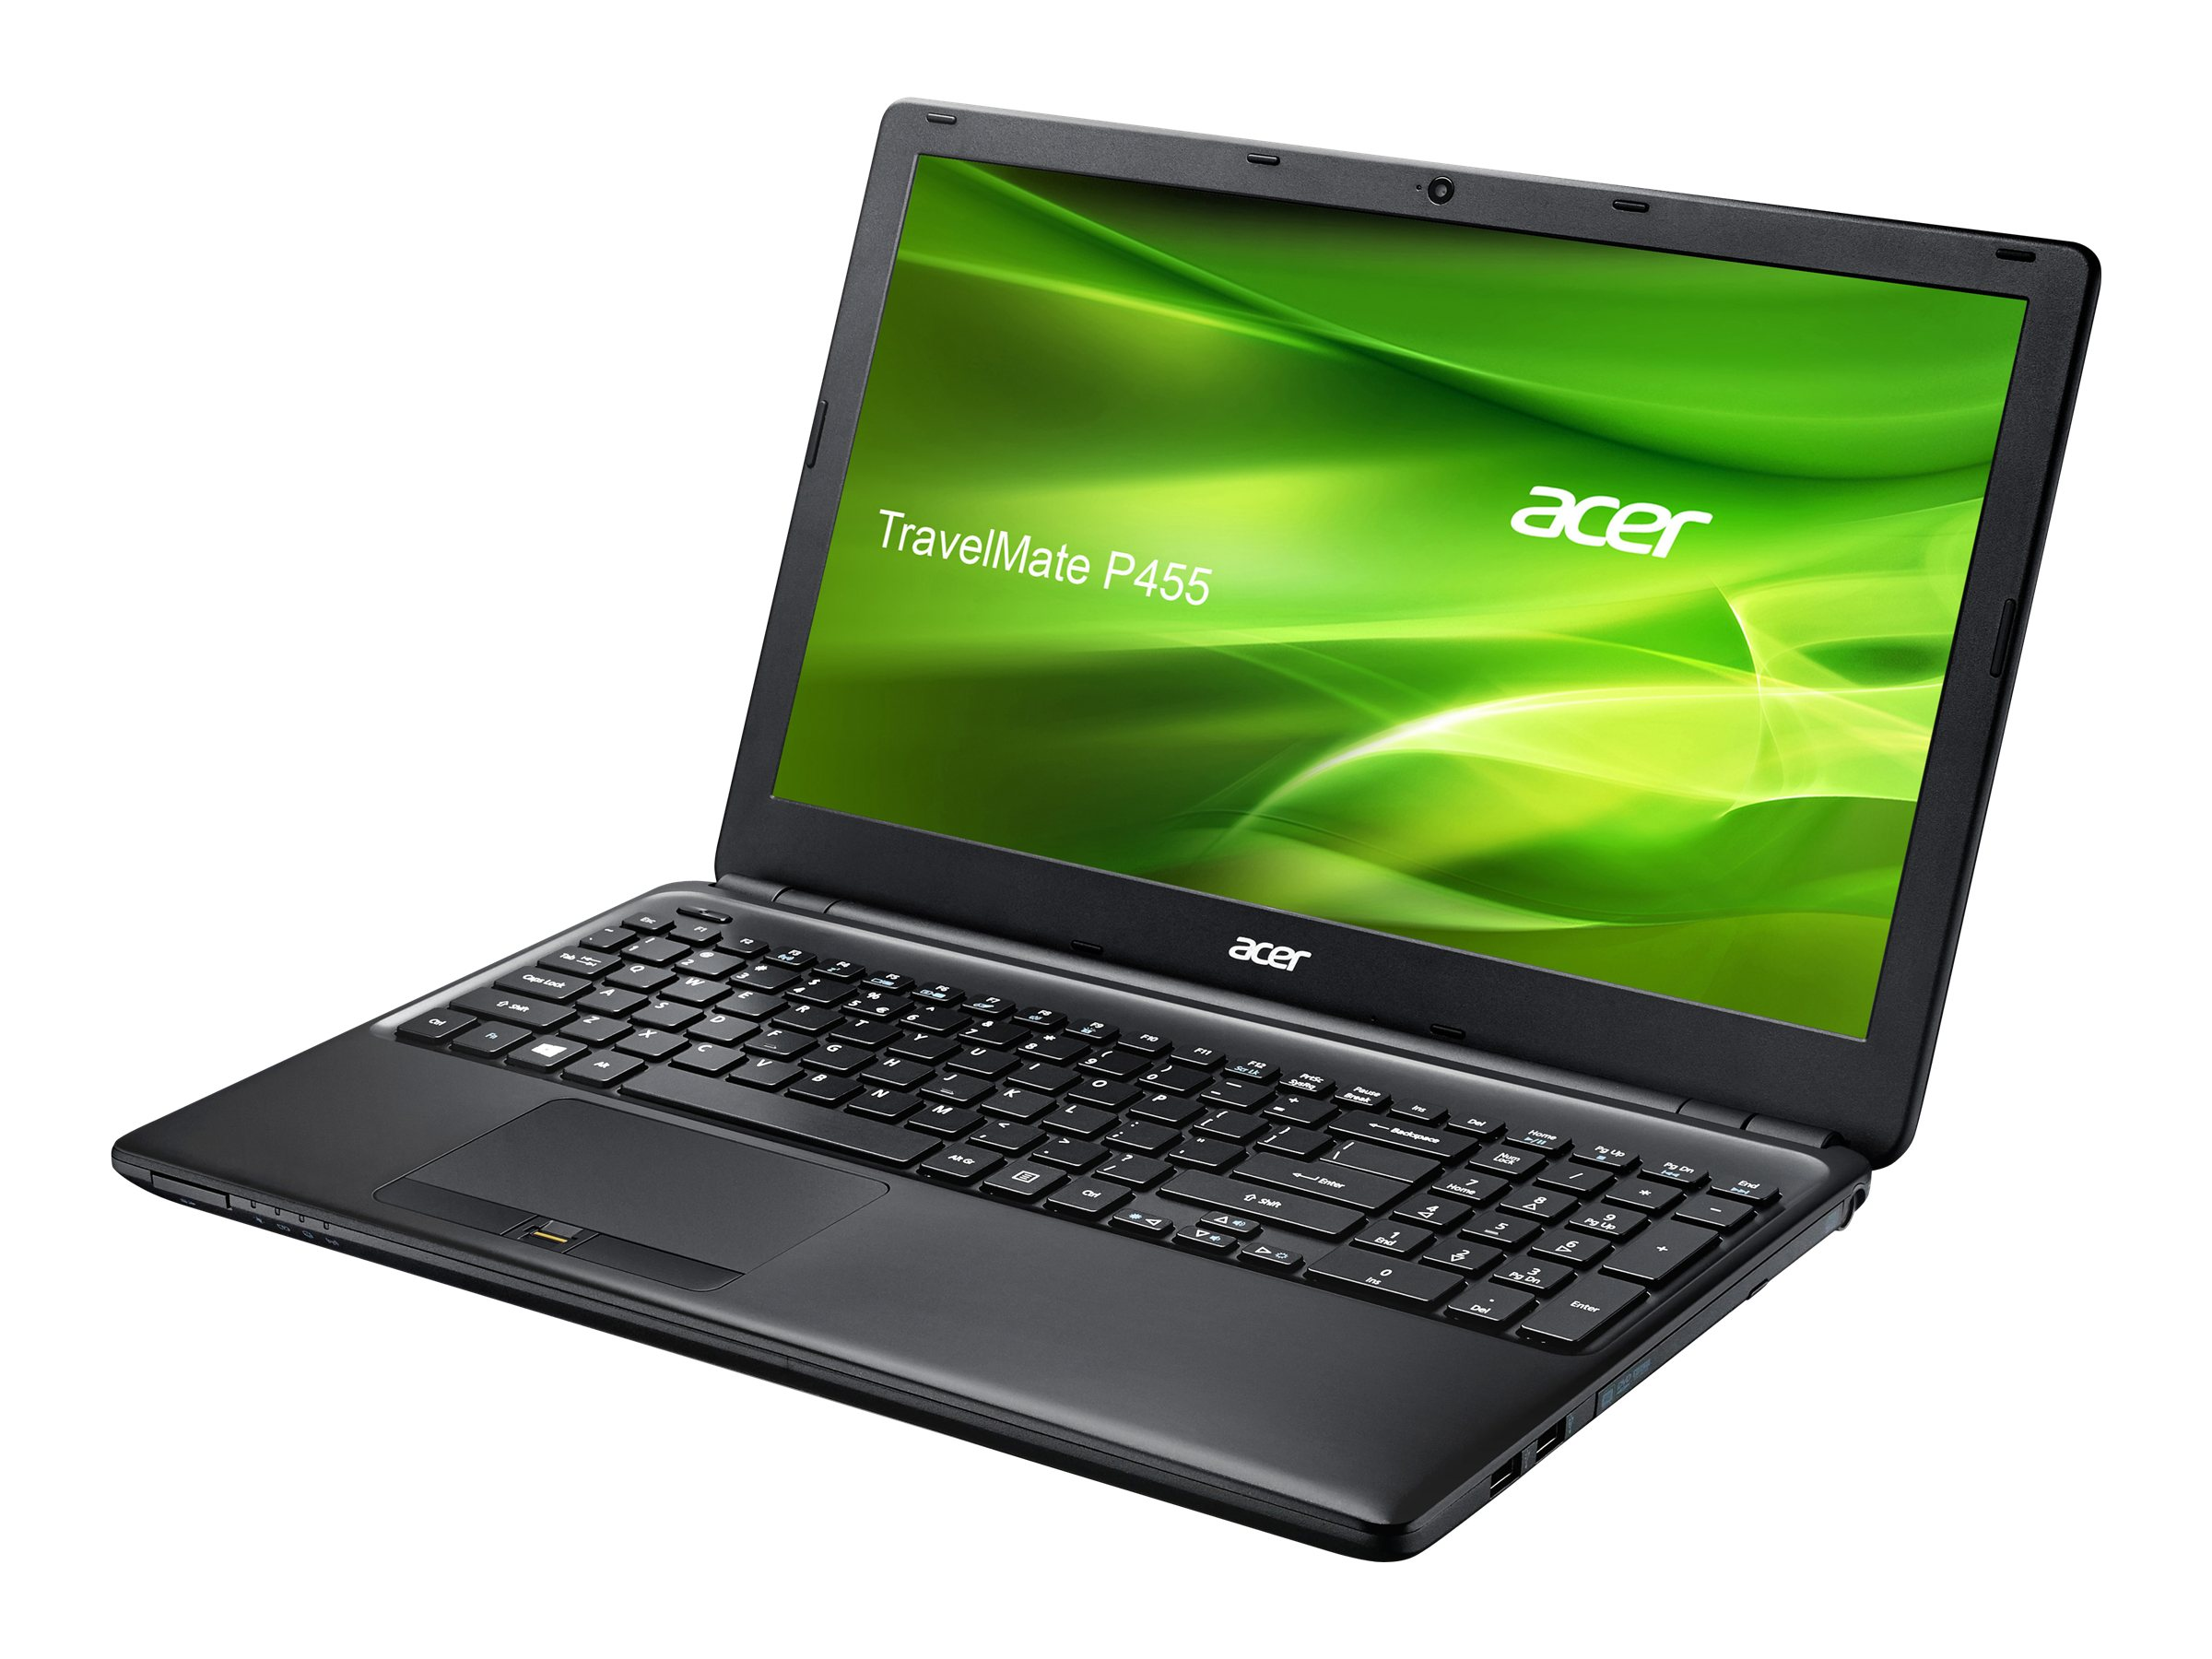 Acer TravelMate P455-M-7462 : 1.8GHz Core i7 15.6in display, NX.V8MAA.007